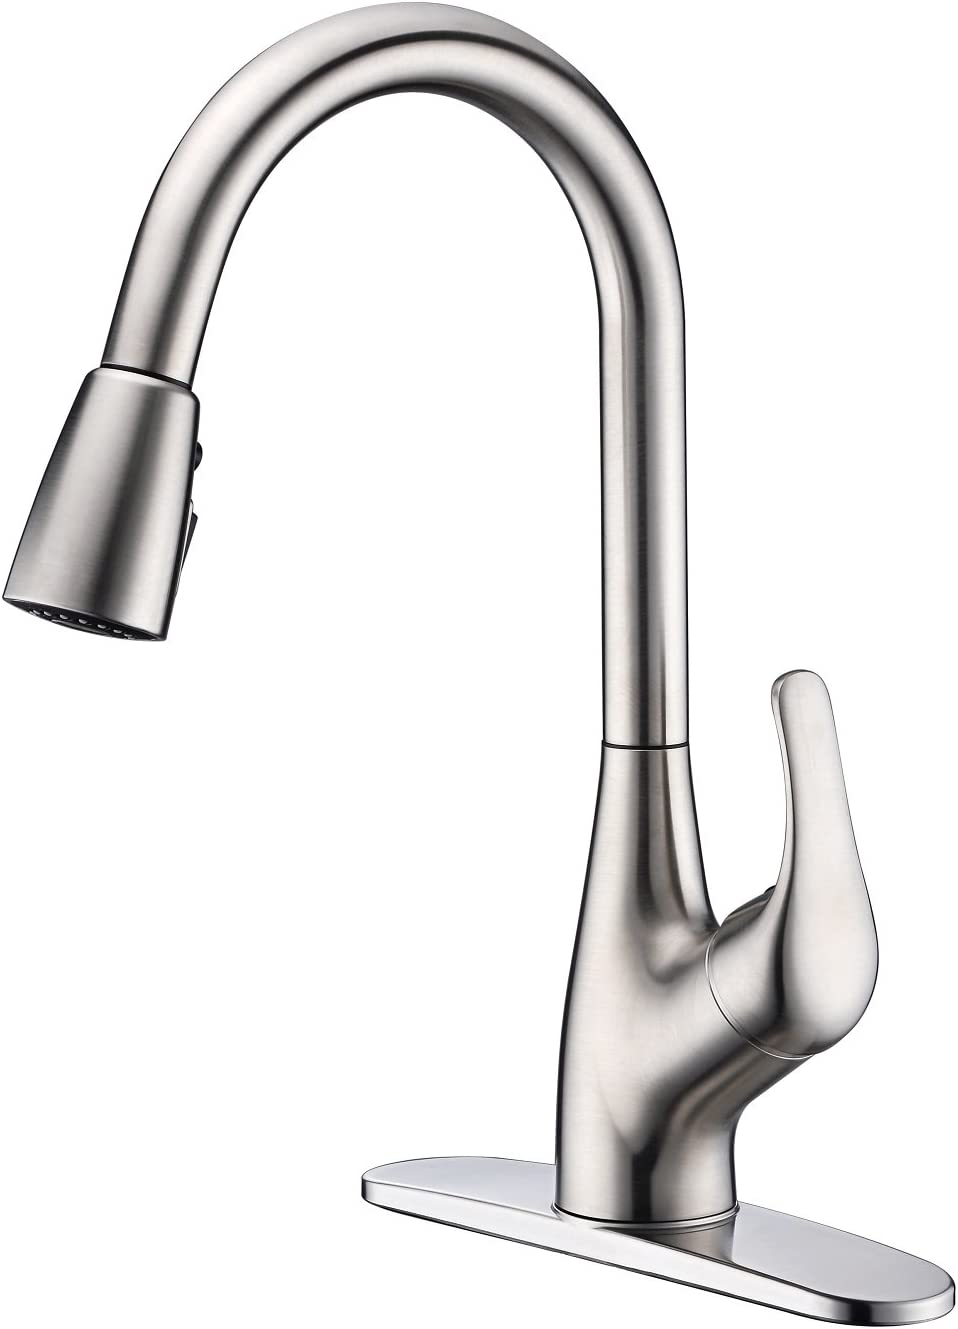 Top 10 Best Kitchen Faucets under $100, $150 to $200 Reviews in 2021 9